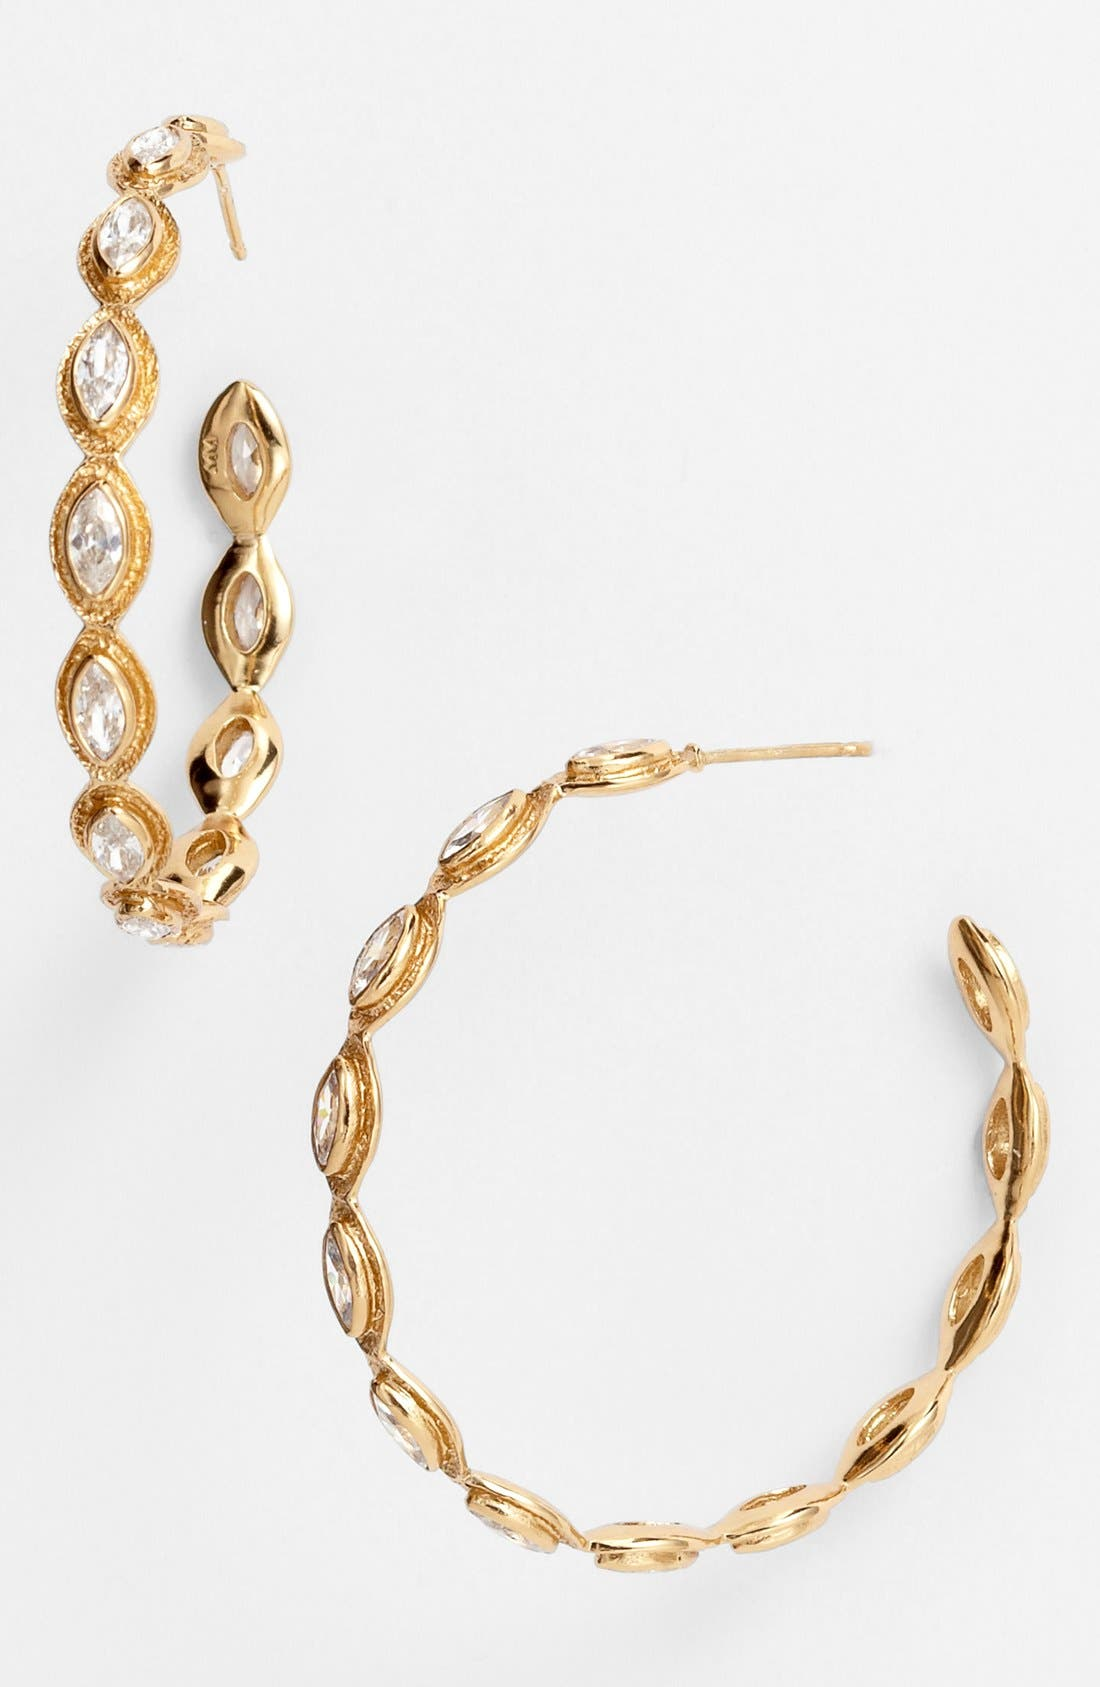 Alternate Image 1 Selected - Melinda Maria 'Gwyneth' Medium Hoop Earrings (Nordstrom Exclusive)